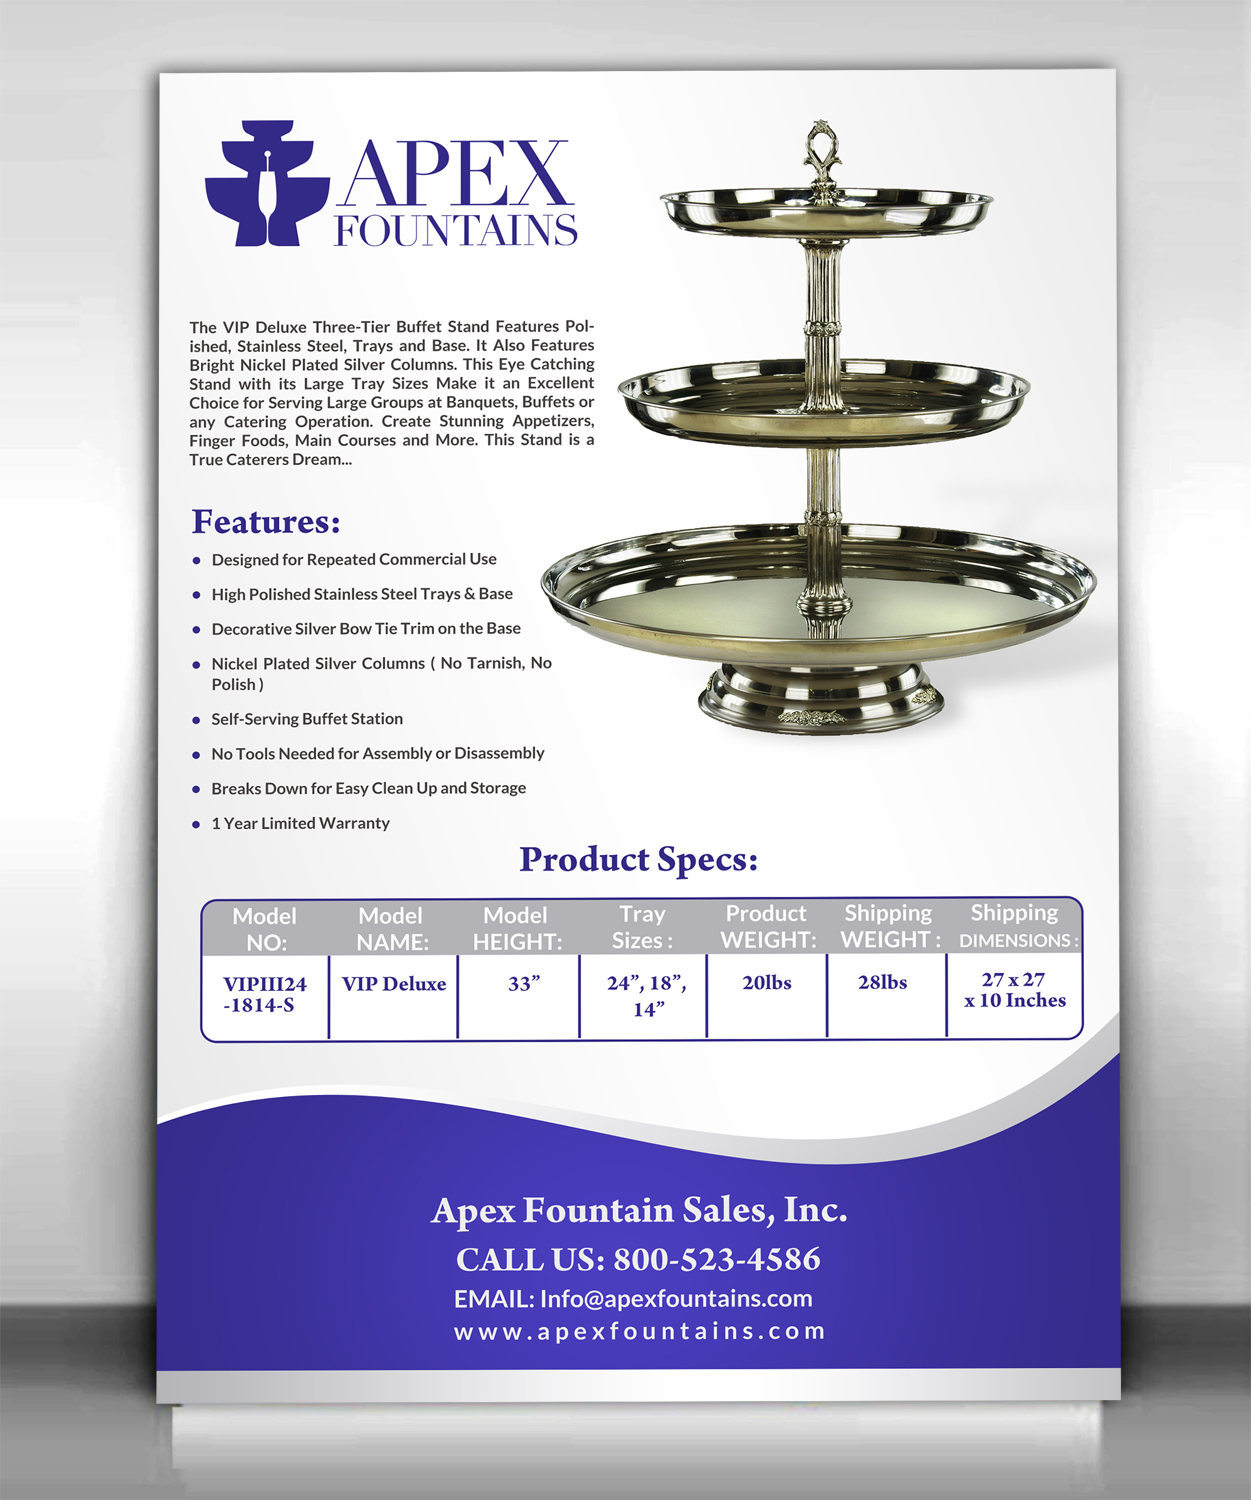 elegant professional event flyer design for apex fountains in united states design 13760132